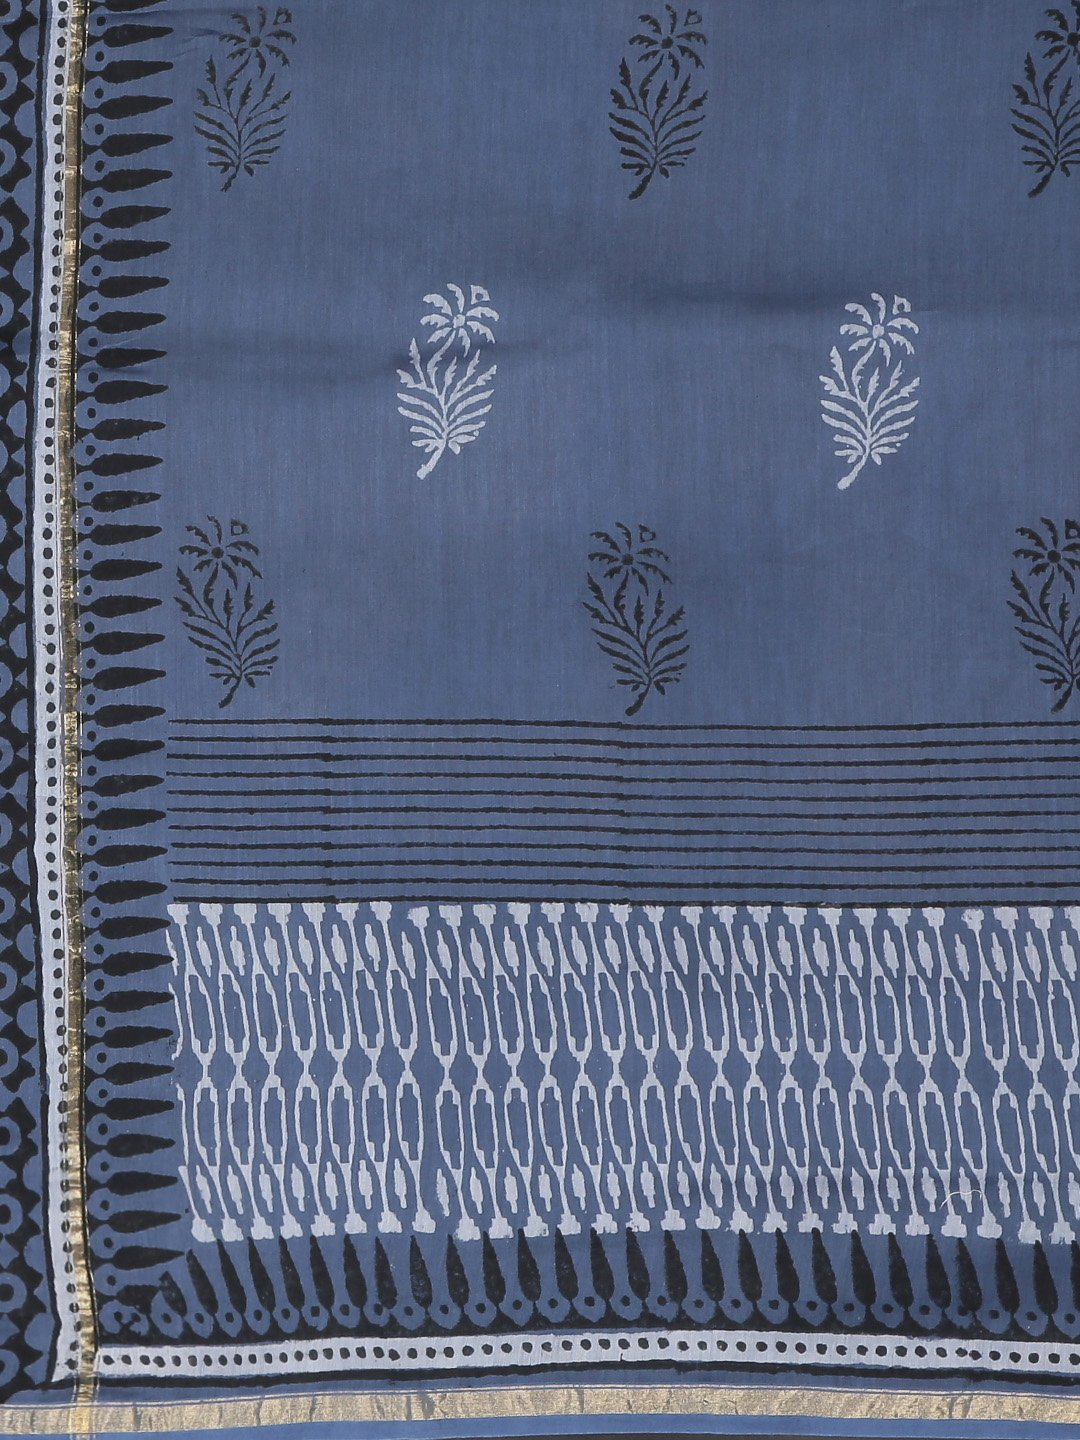 Navy Blue & White Handblock Print Handcrafted Chanderi Saree-Saree-Kalakari India-BHKPSA0070-Chanderi, Dabu, Geographical Indication, Hand Blocks, Hand Crafted, Heritage Prints, Indigo, Natural Dyes, Sarees, Sustainable Fabrics-[Linen,Ethnic,wear,Fashionista,Handloom,Handicraft,Indigo,blockprint,block,print,Cotton,Chanderi,Blue, latest,classy,party,bollywood,trendy,summer,style,traditional,formal,elegant,unique,style,hand,block,print, dabu,booti,gift,present,glamorous,affordable,collectible,Sari